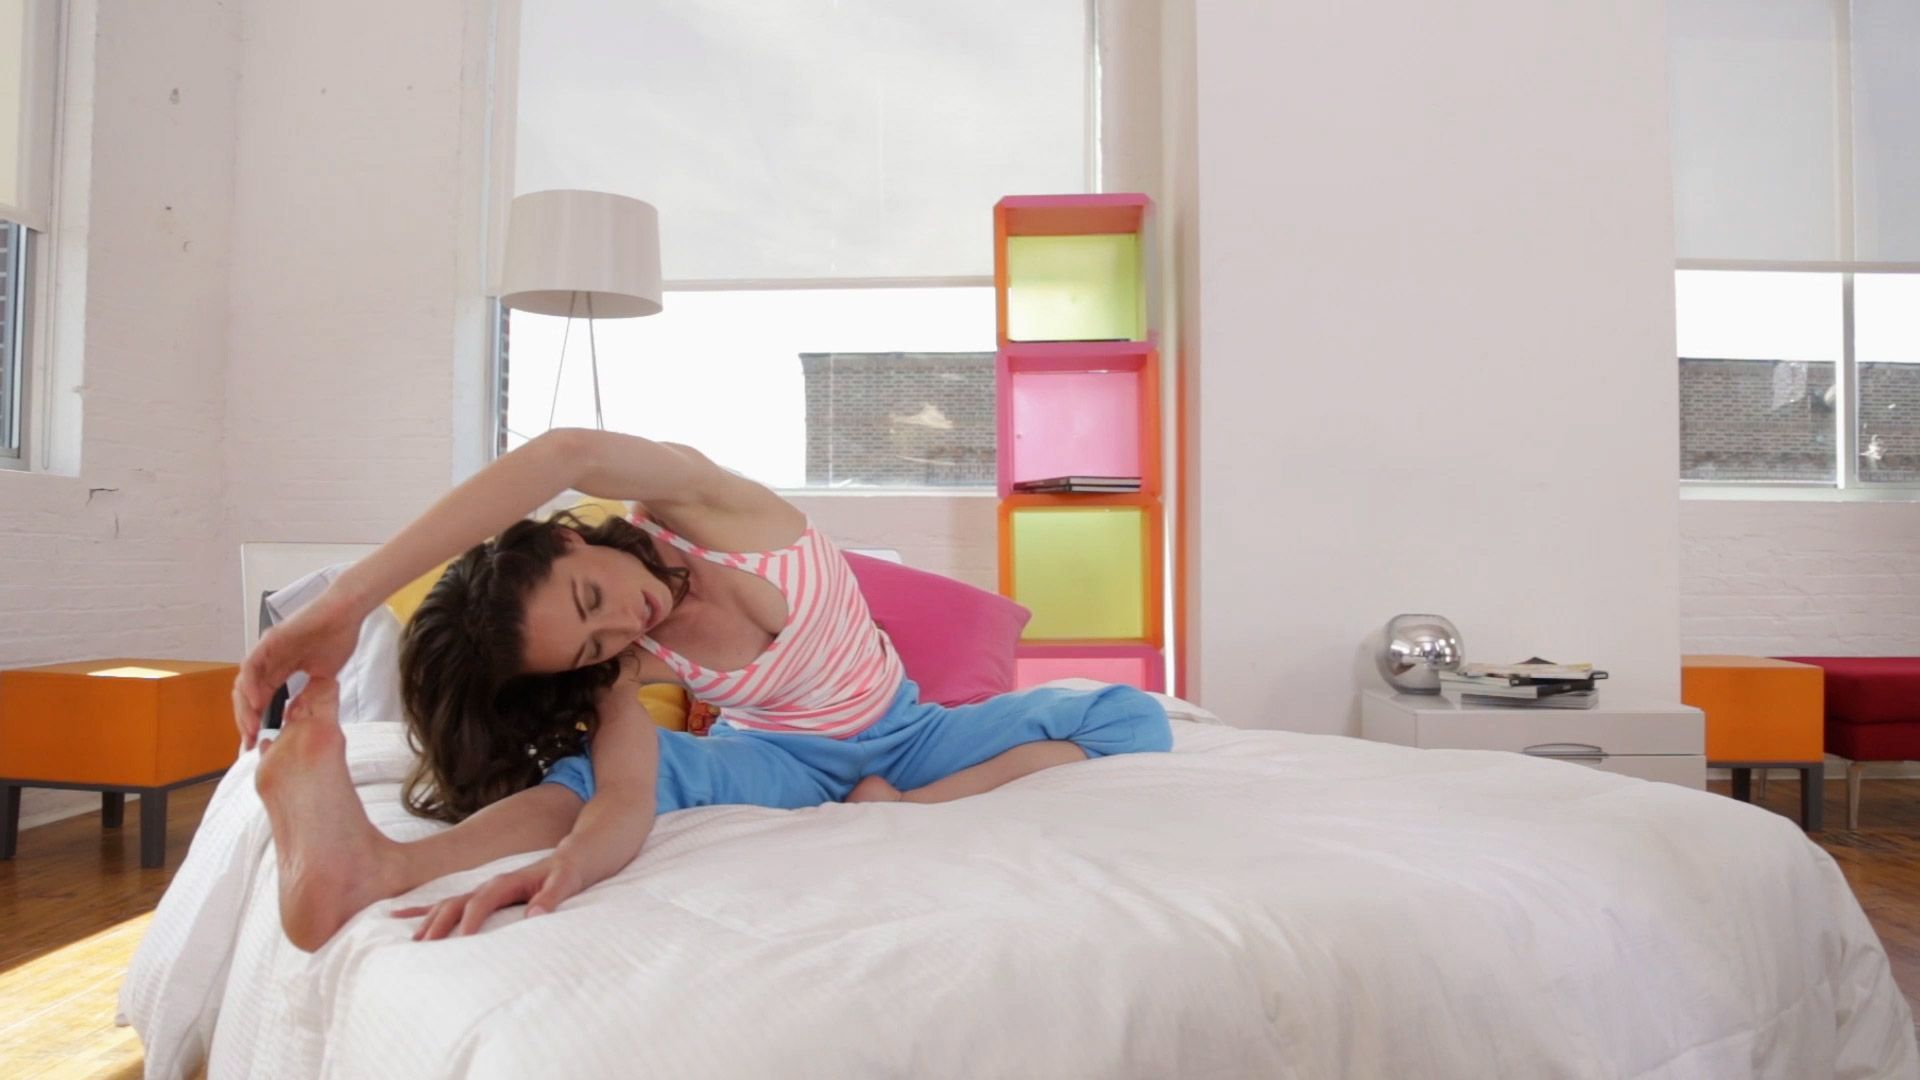 6 Stretches Everyone Should Do In Bed Bed stretches